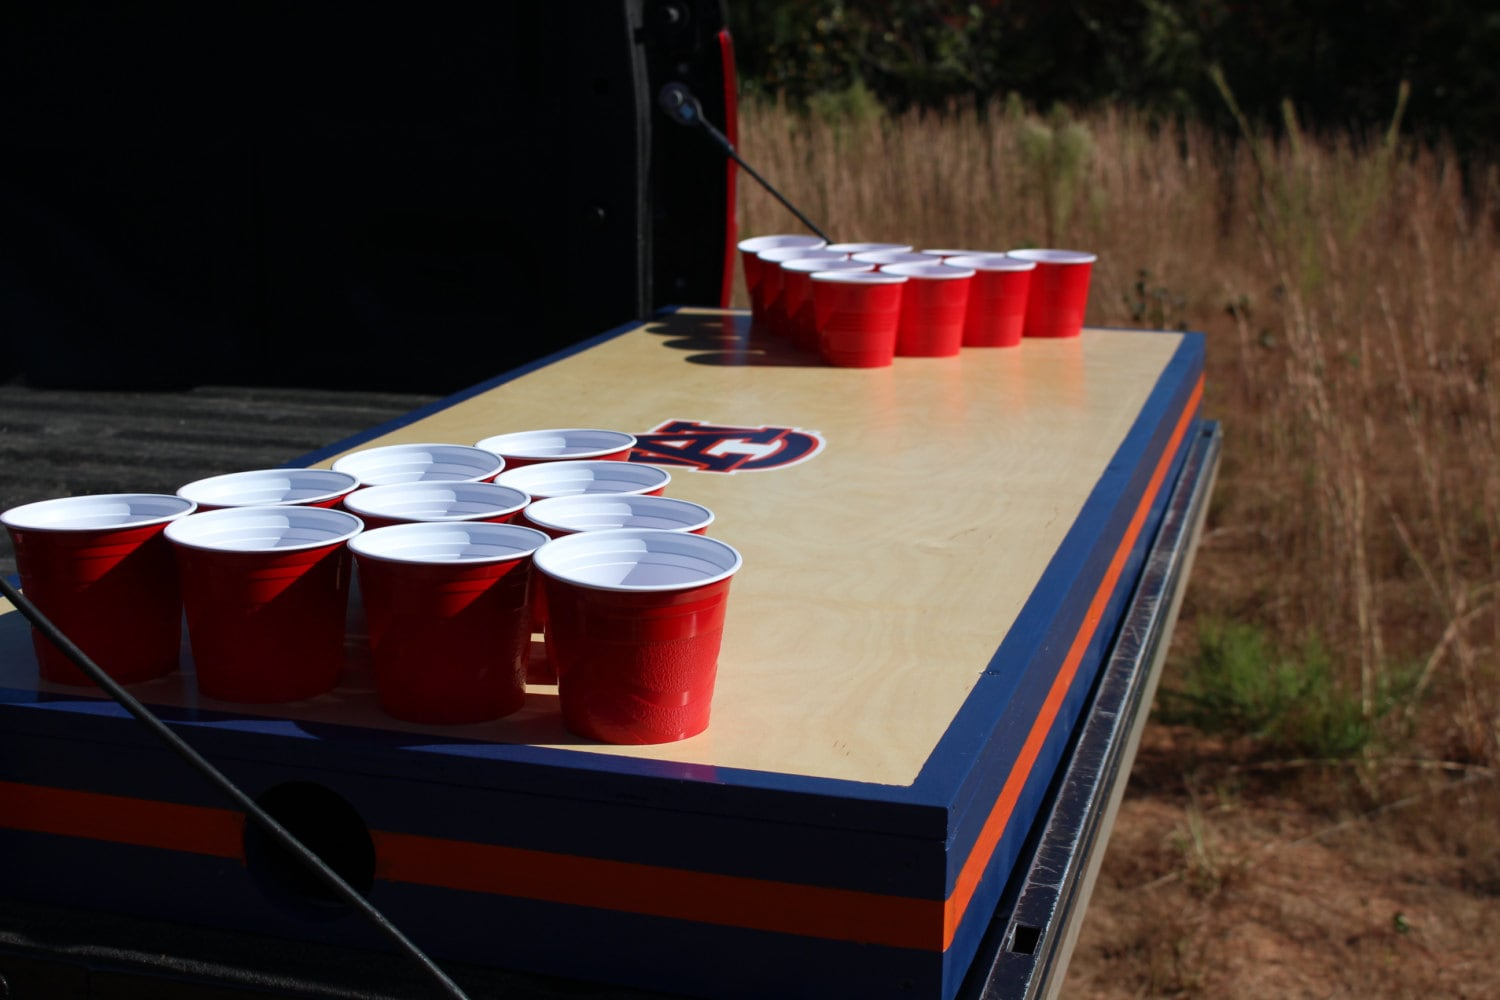 Homemade beer pong table - Truck Bed Beer Pong Table